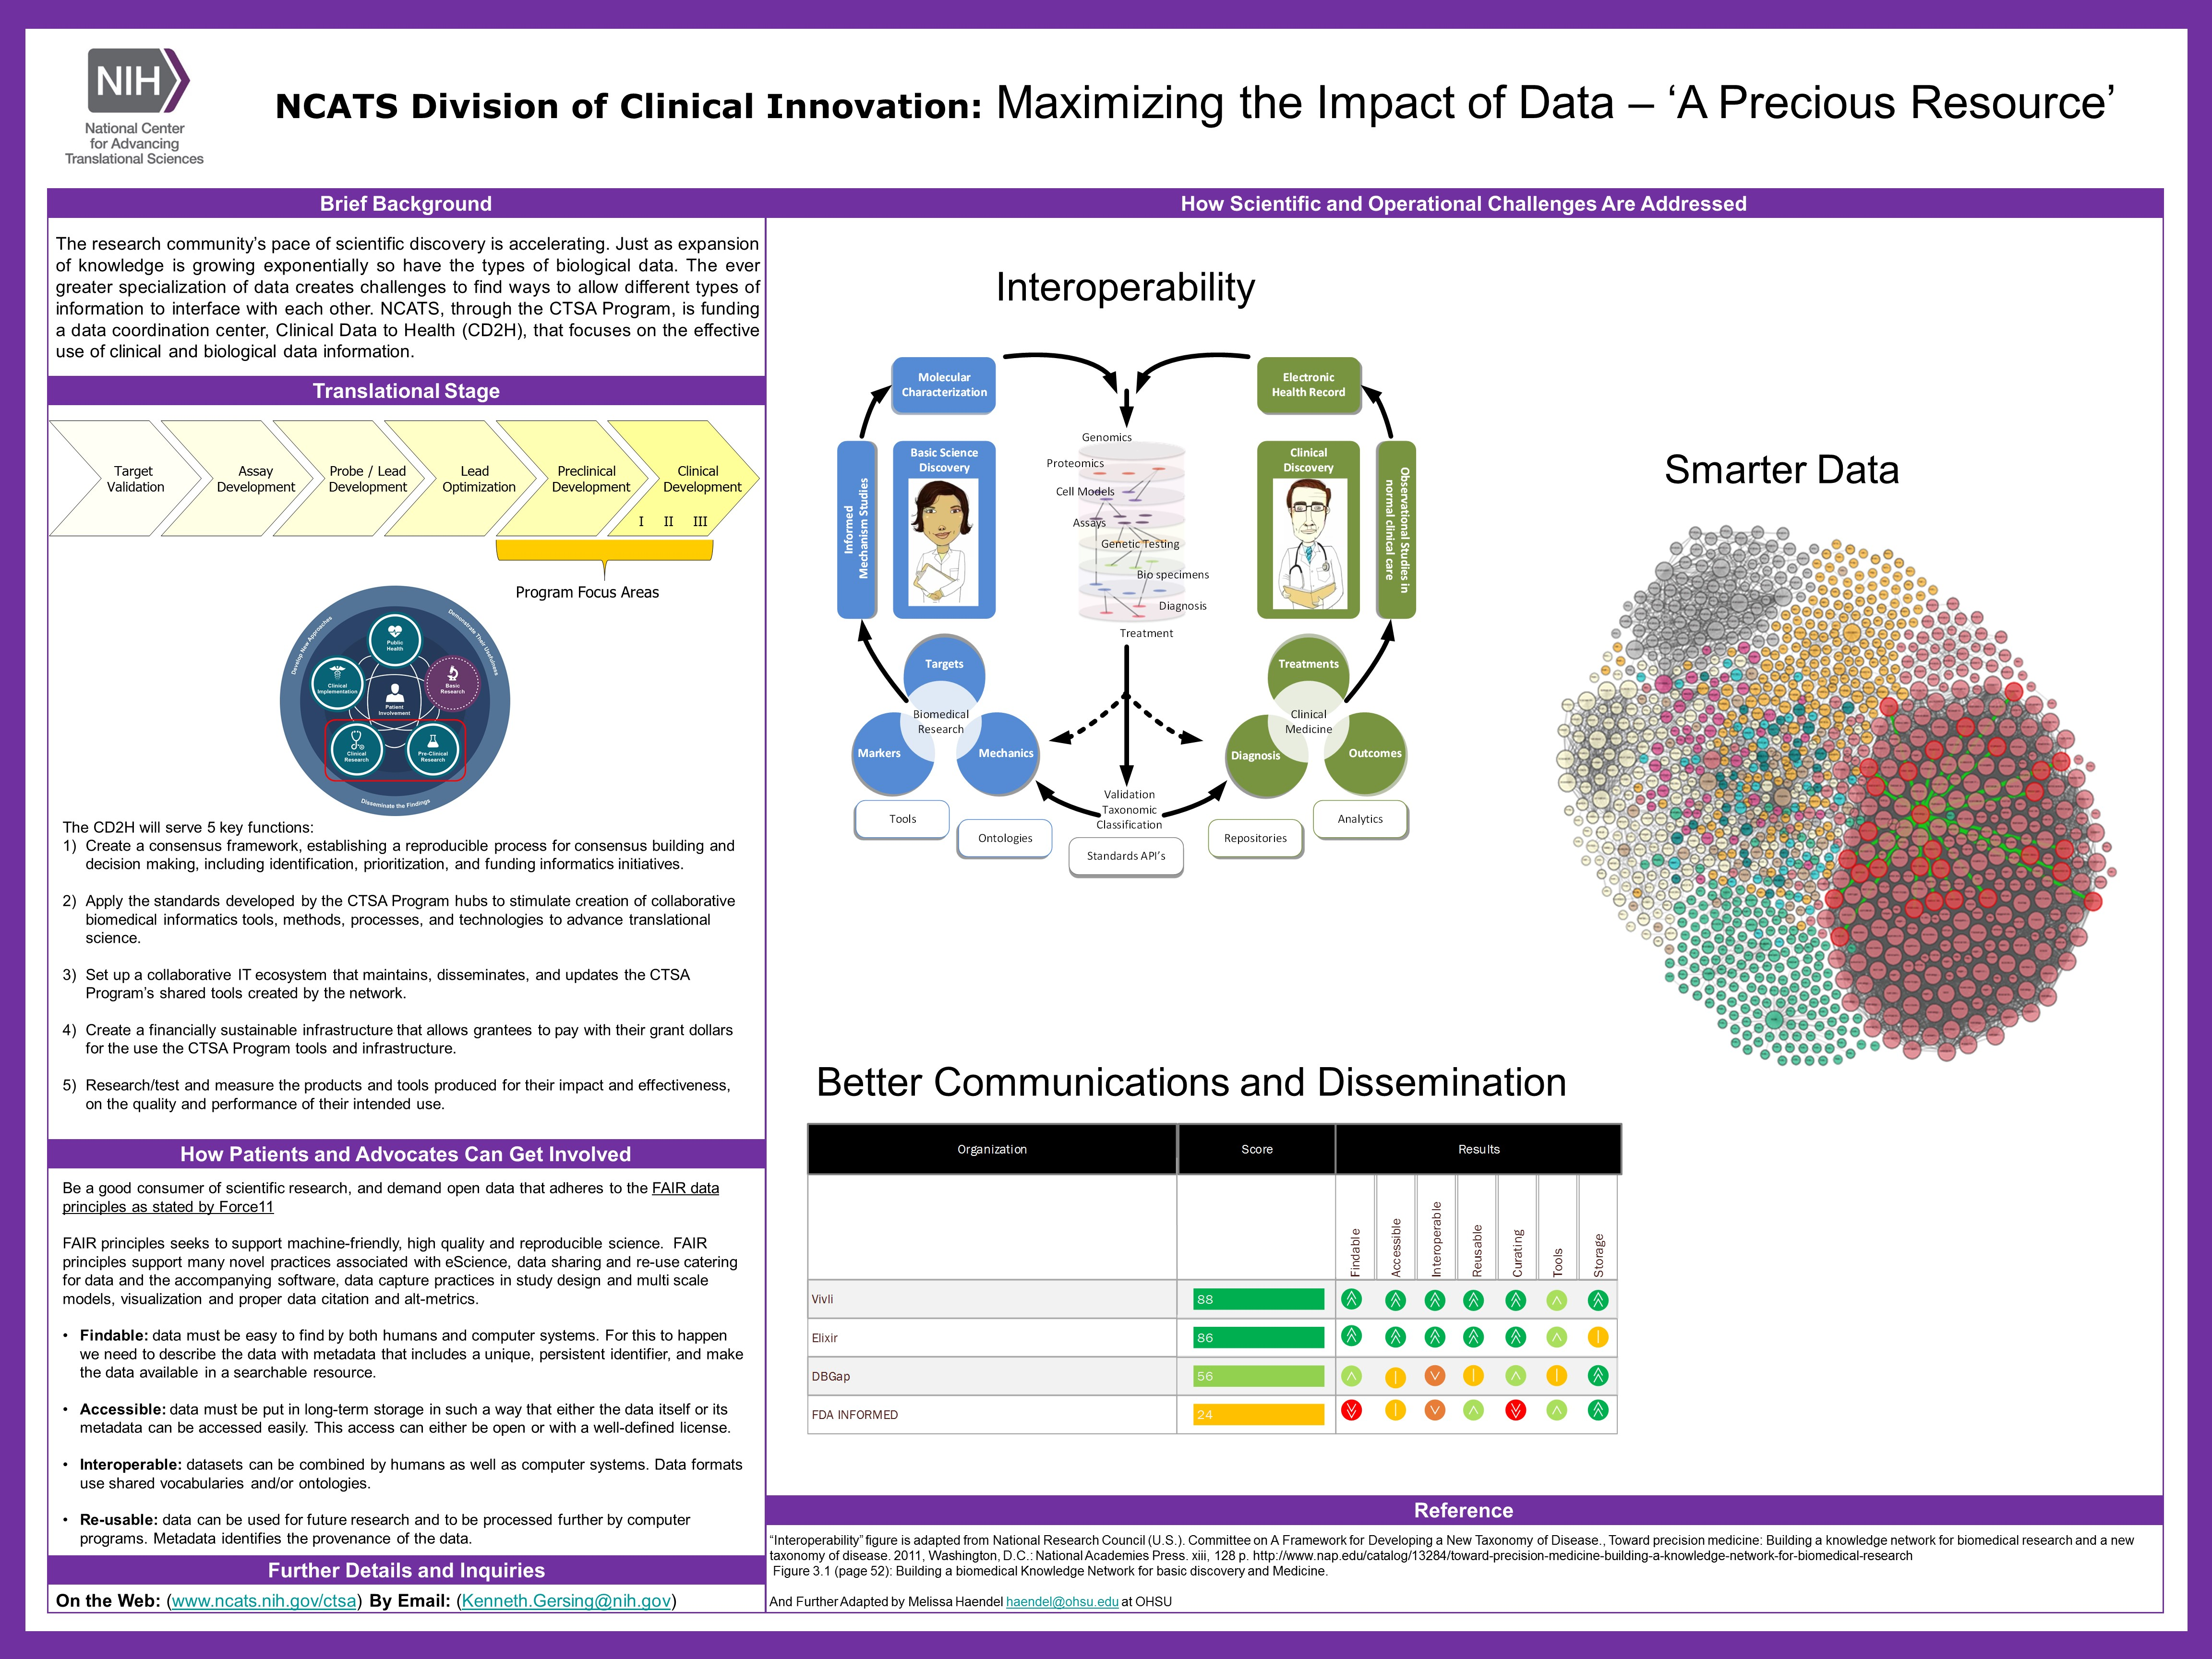 This NCATS Day poster provides background on Maximizing the Impact of Data – 'A Precious Resource', part of NCATS' Clinical and Translational Science Awards Program, including goals, where it falls within the path of drug and therapeutics development and the translational science spectrum, how patients and advocates can get involved, and how NCATS addresses scientific and operational challenges.